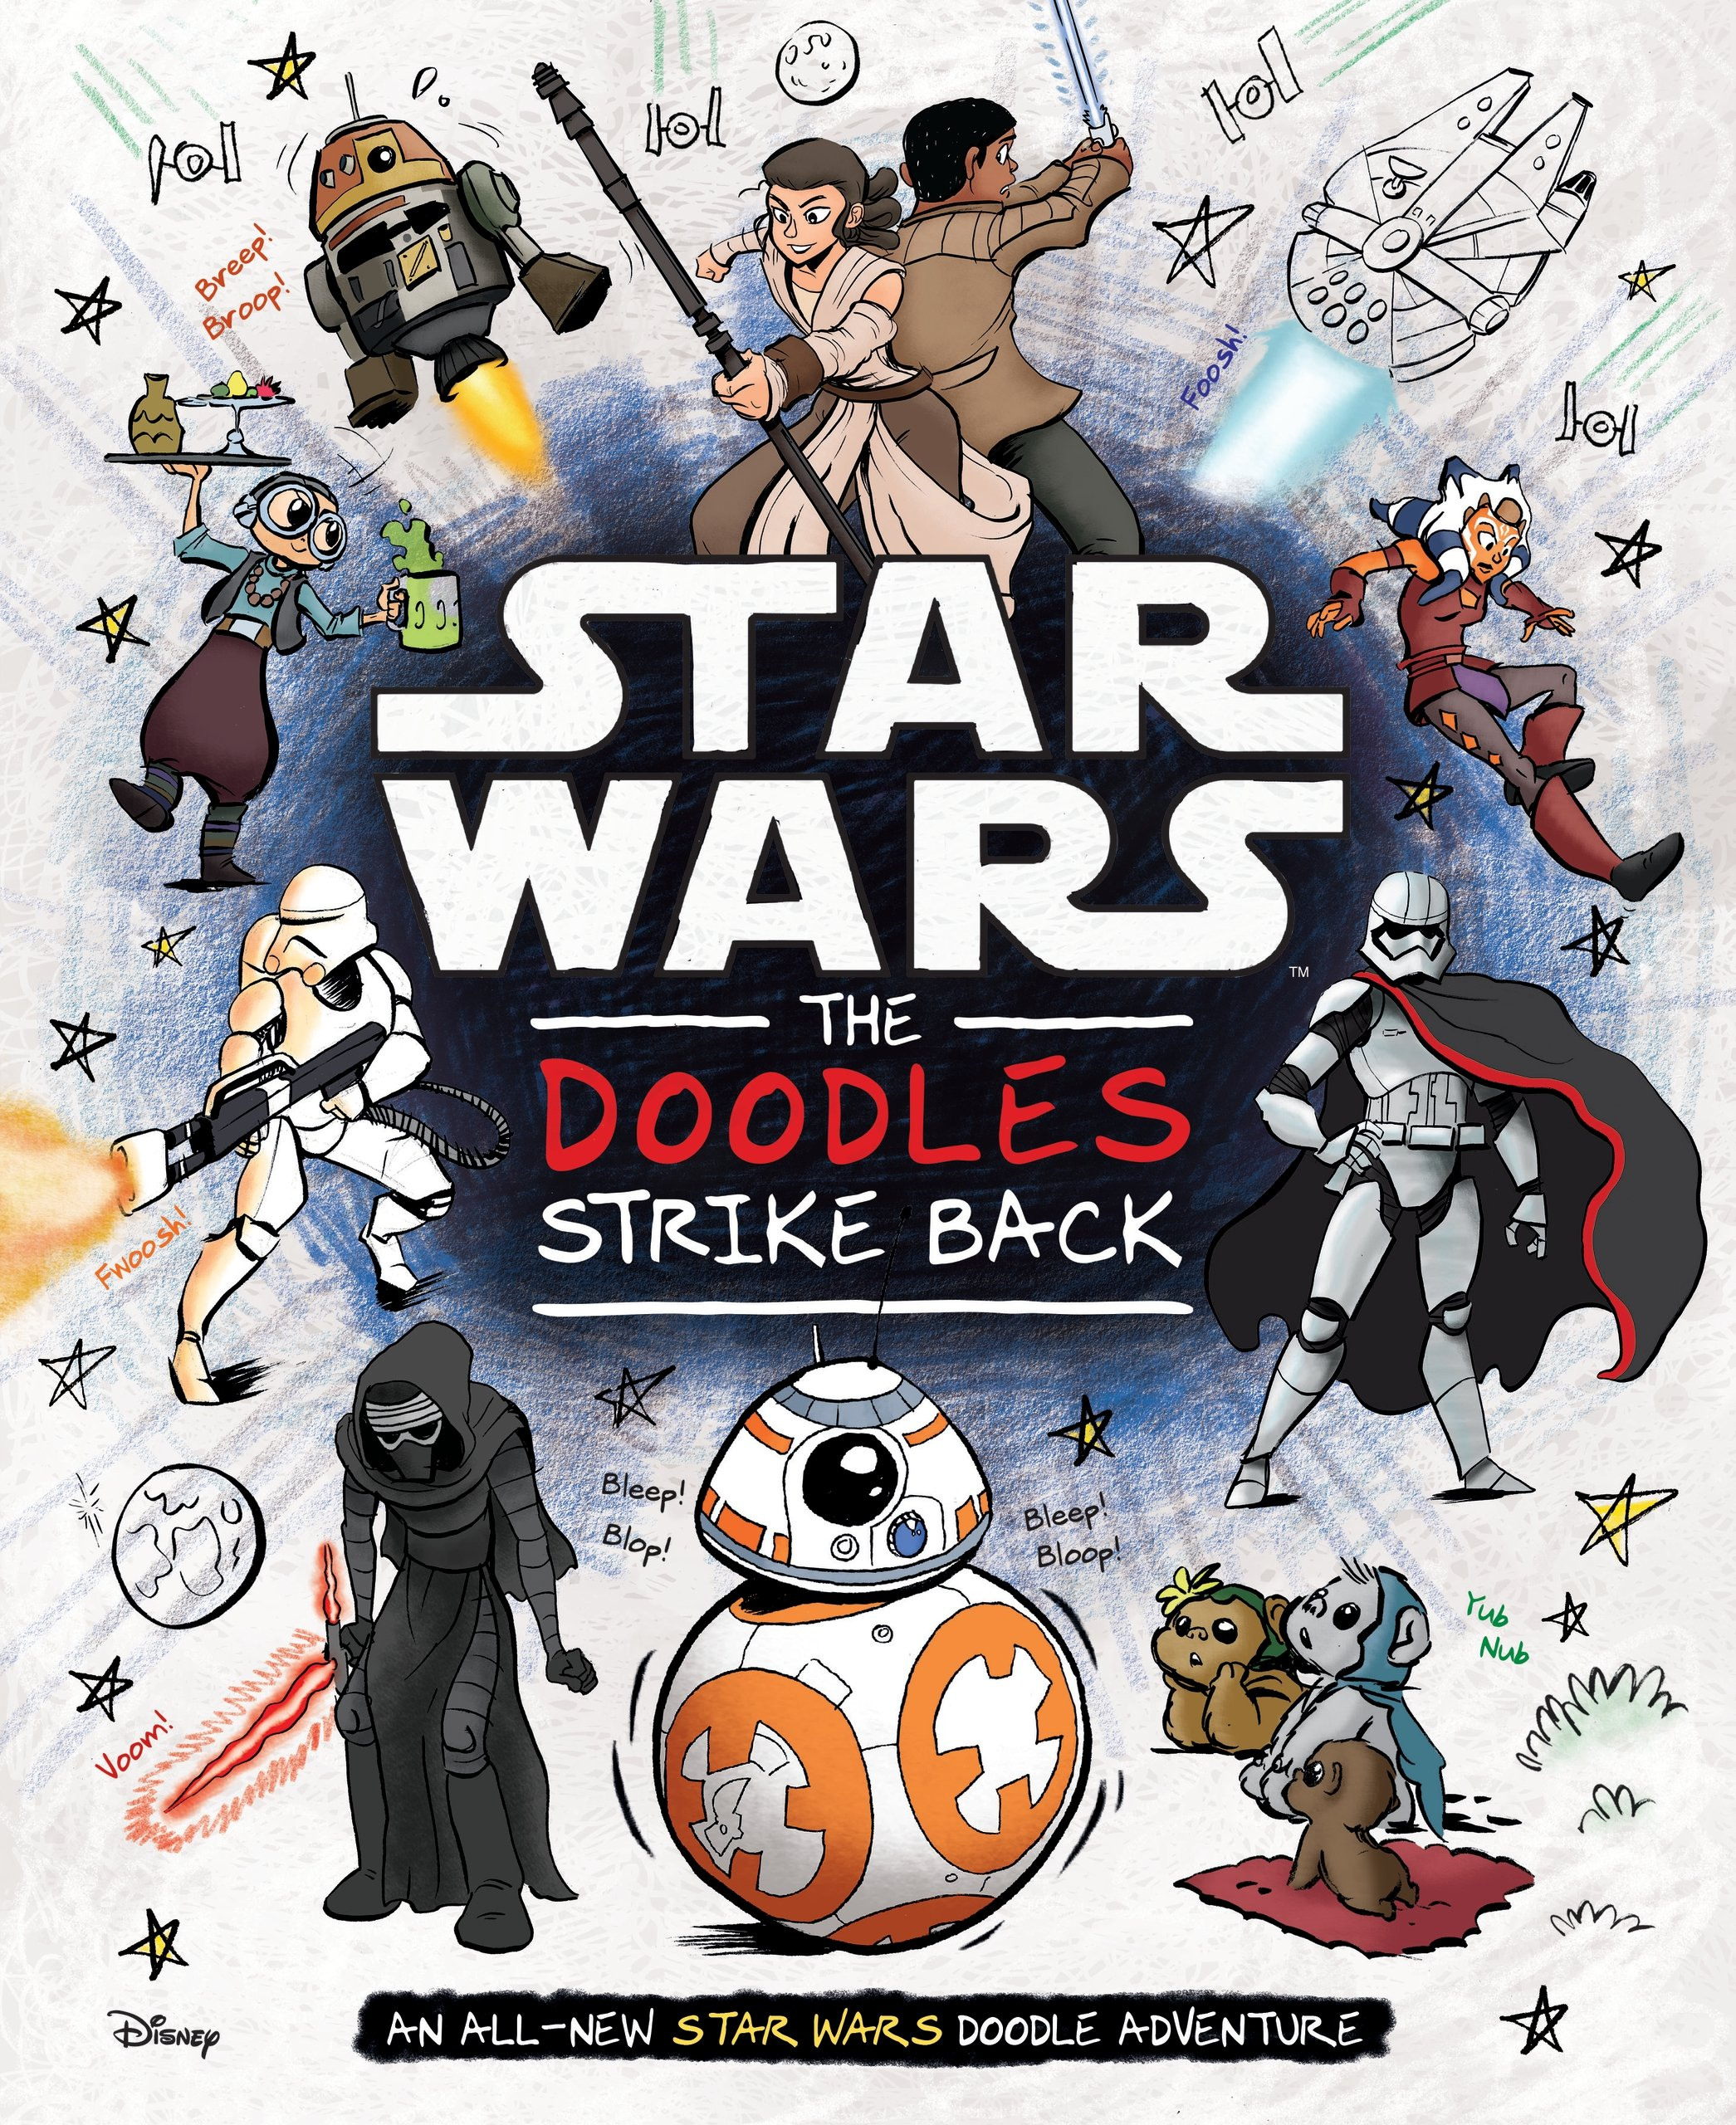 Star Wars: The Doodles Strike Back